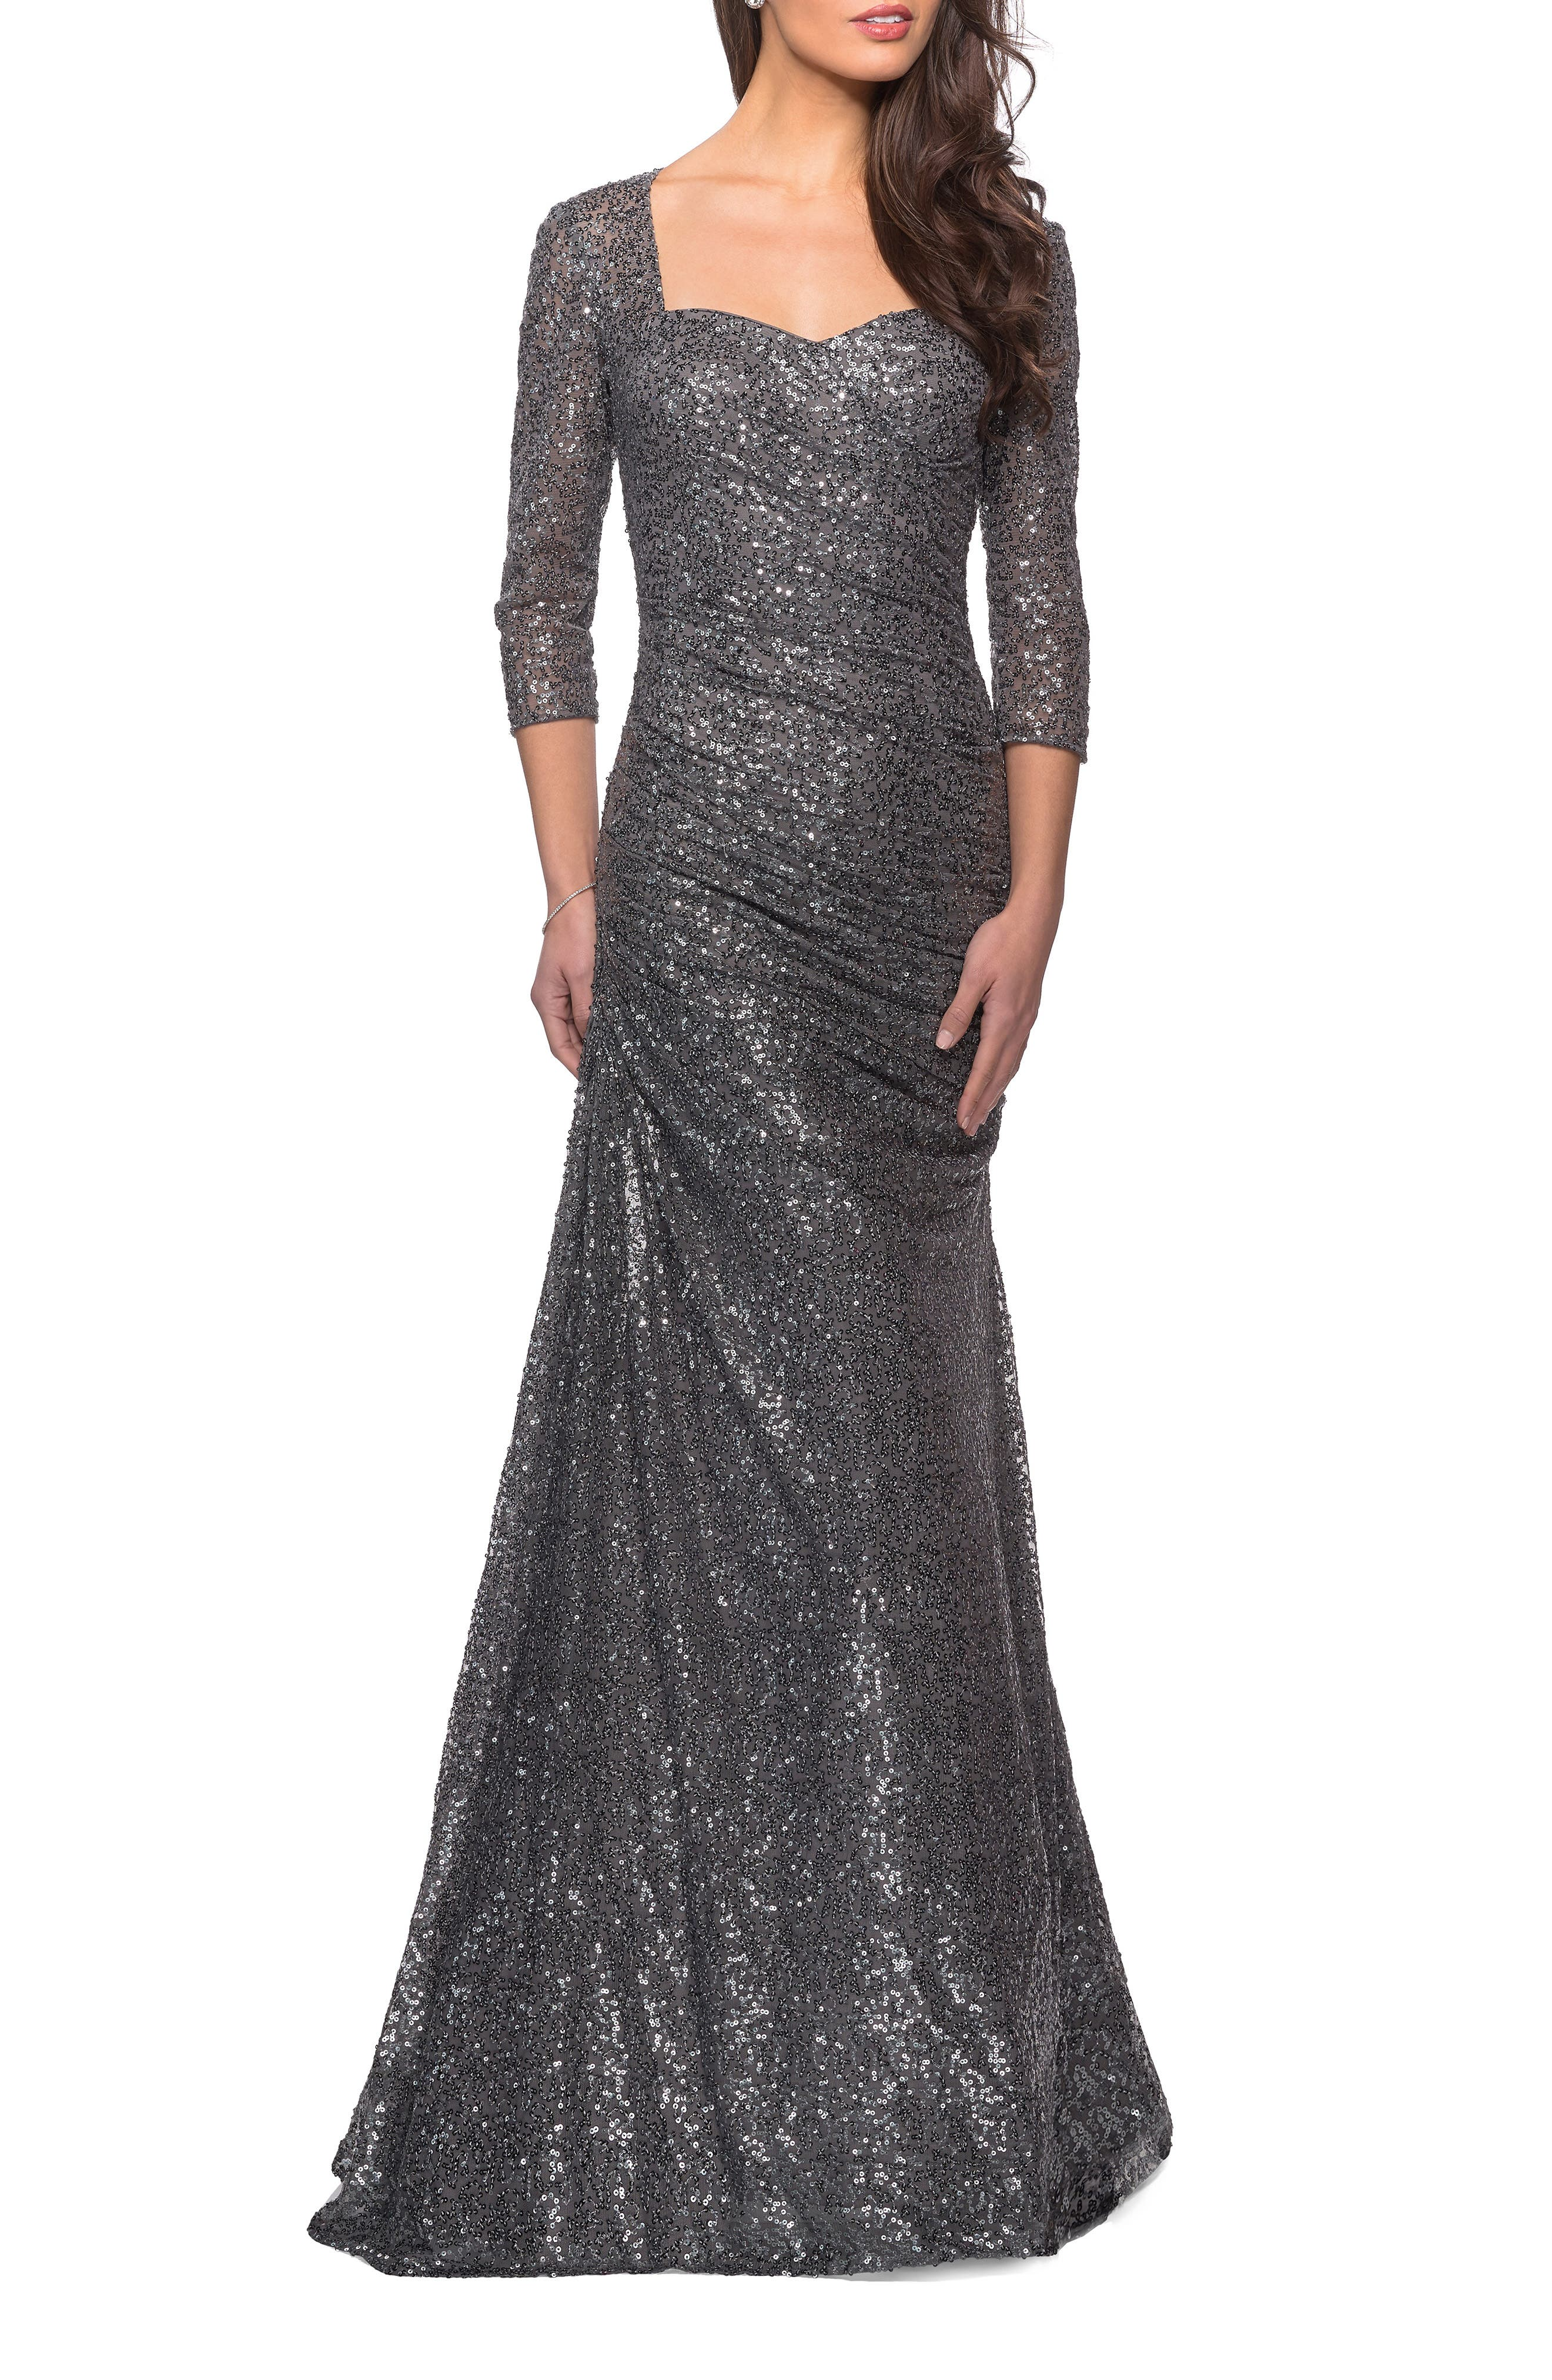 1980s Clothing, Fashion | 80s Style Clothes Womens La Femme Ruched Sequin Trumpet Gown $438.00 AT vintagedancer.com